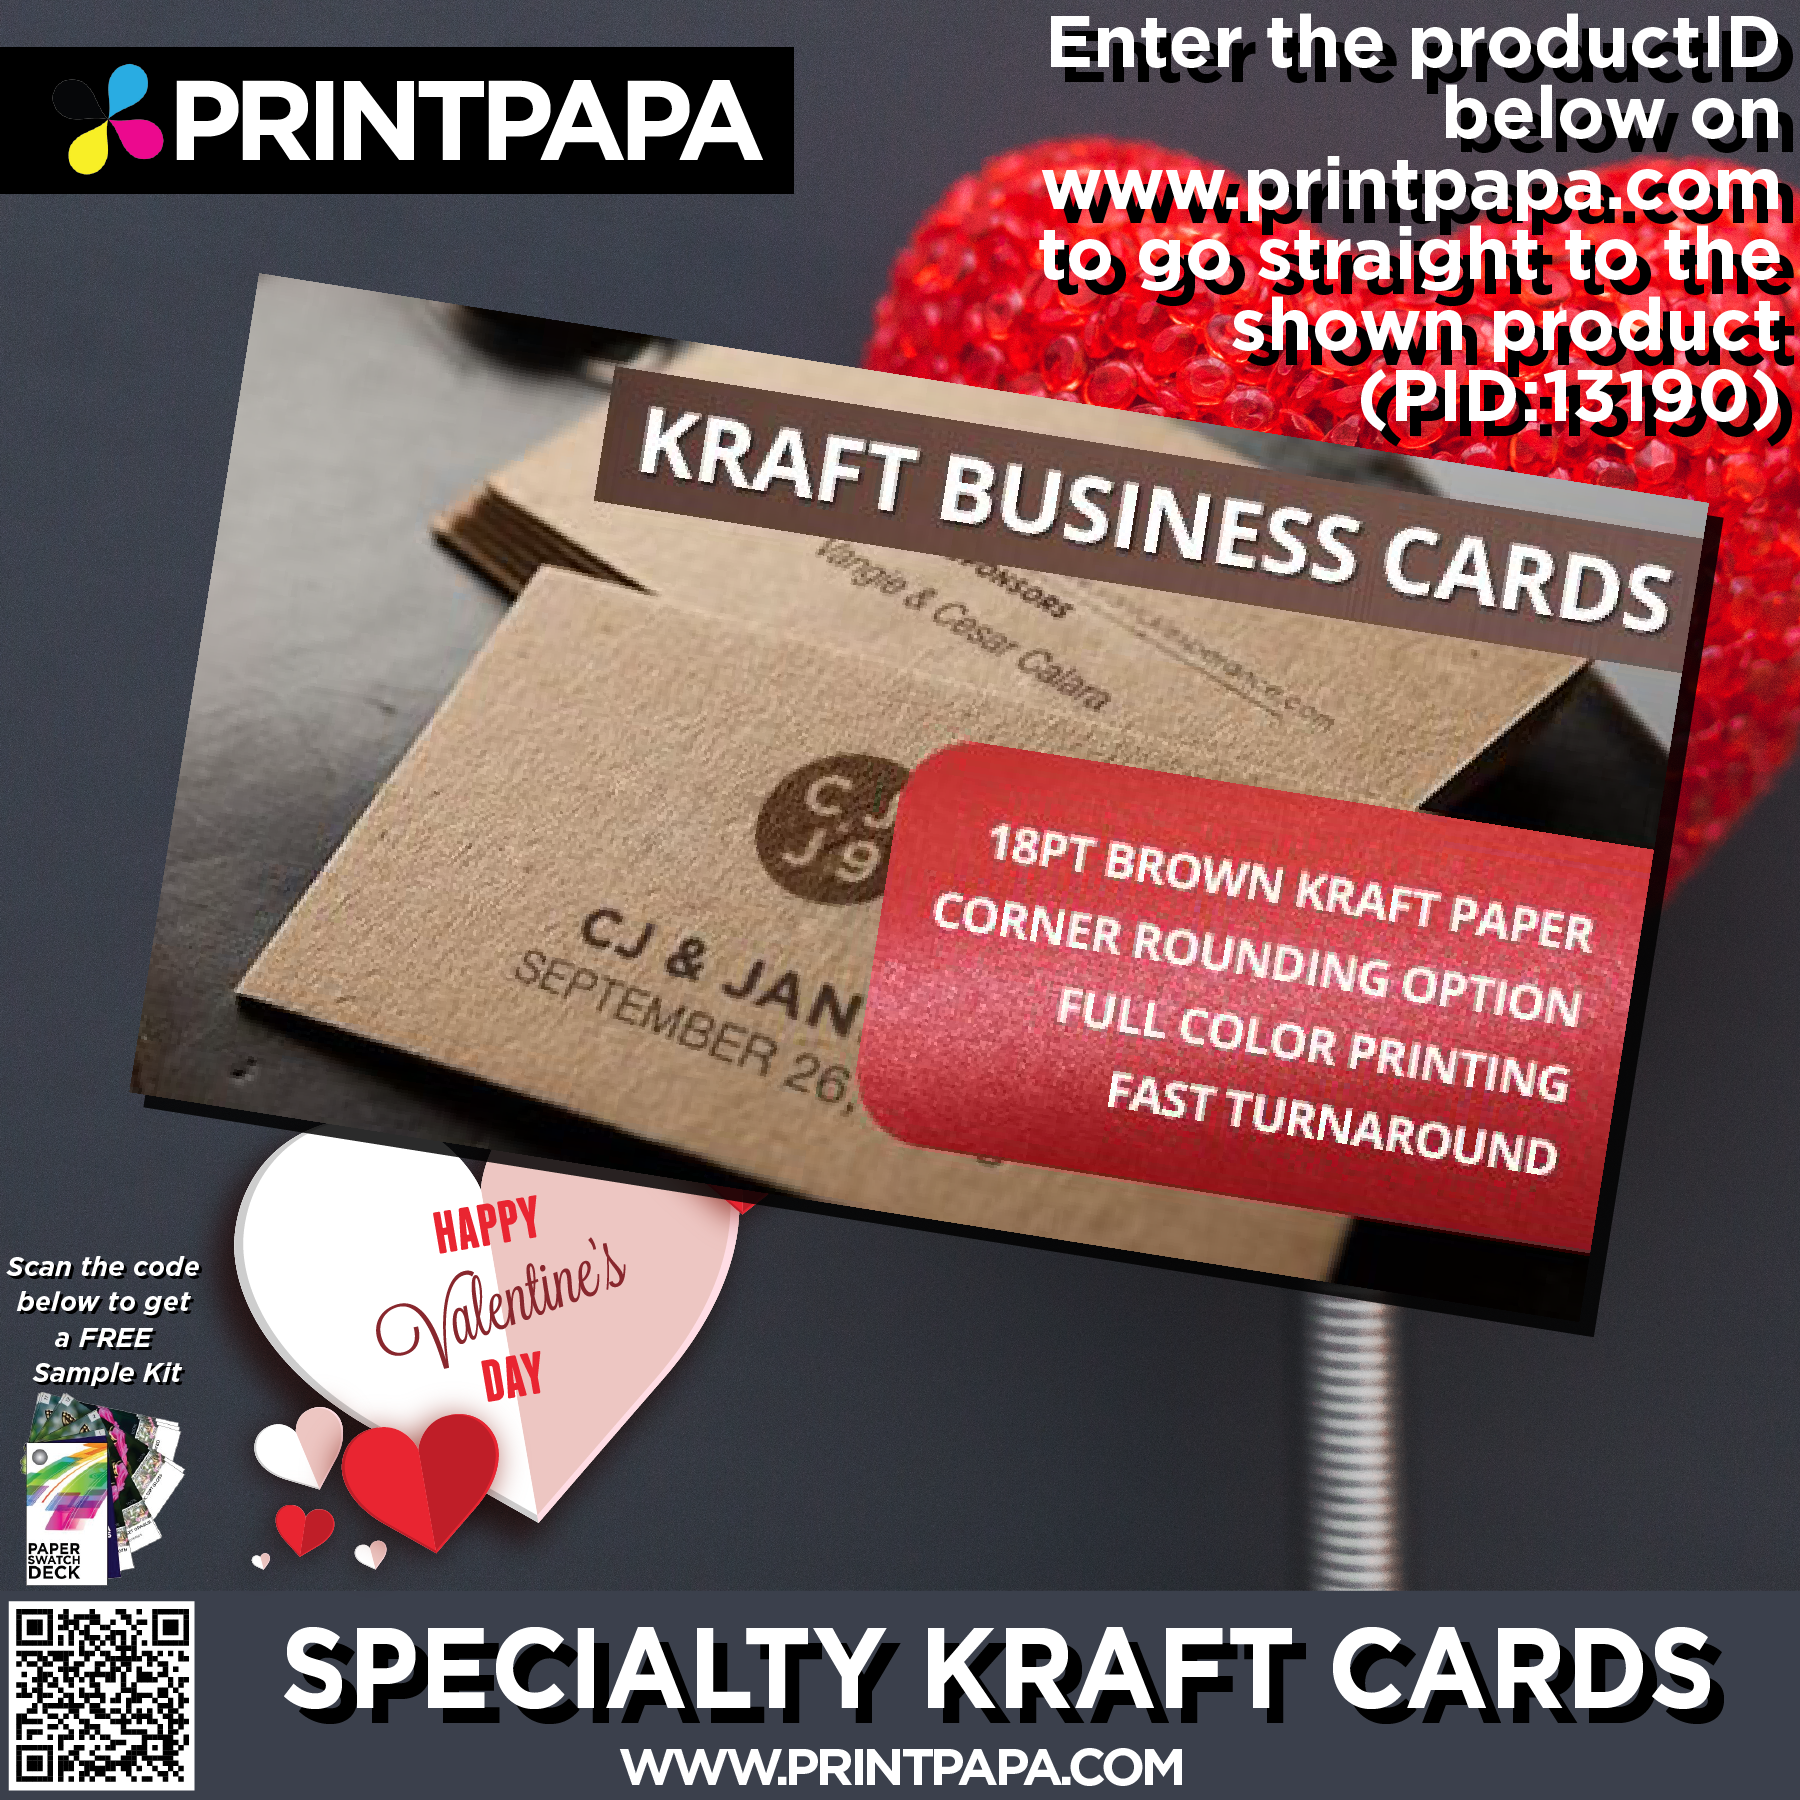 Specialty Biz Cards NOW AVAILABLE Business cards printed on